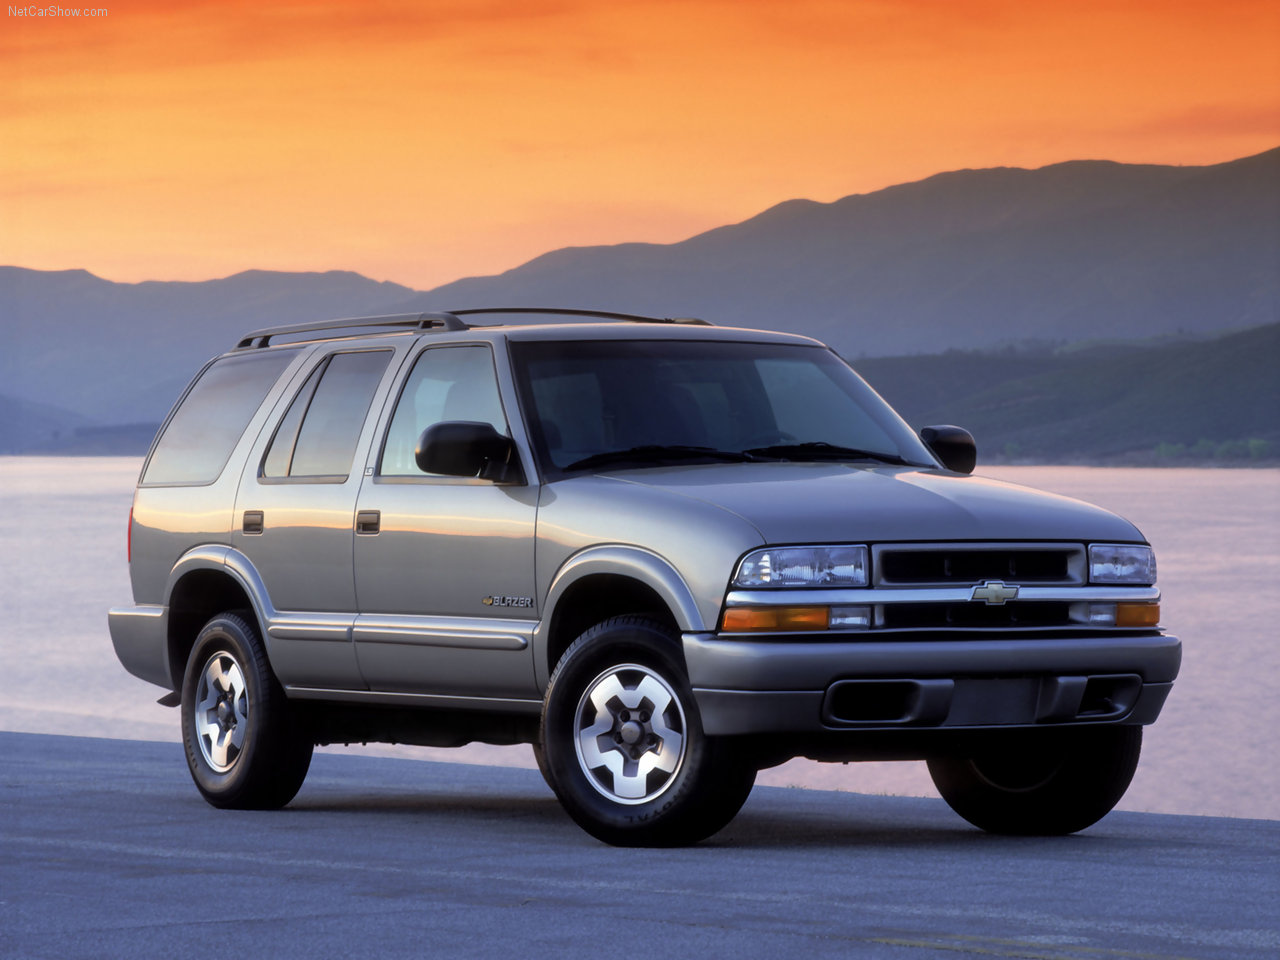 2002 Chevrolet Blaze Chevrolet Is A Leading Maker Wallpapers Download